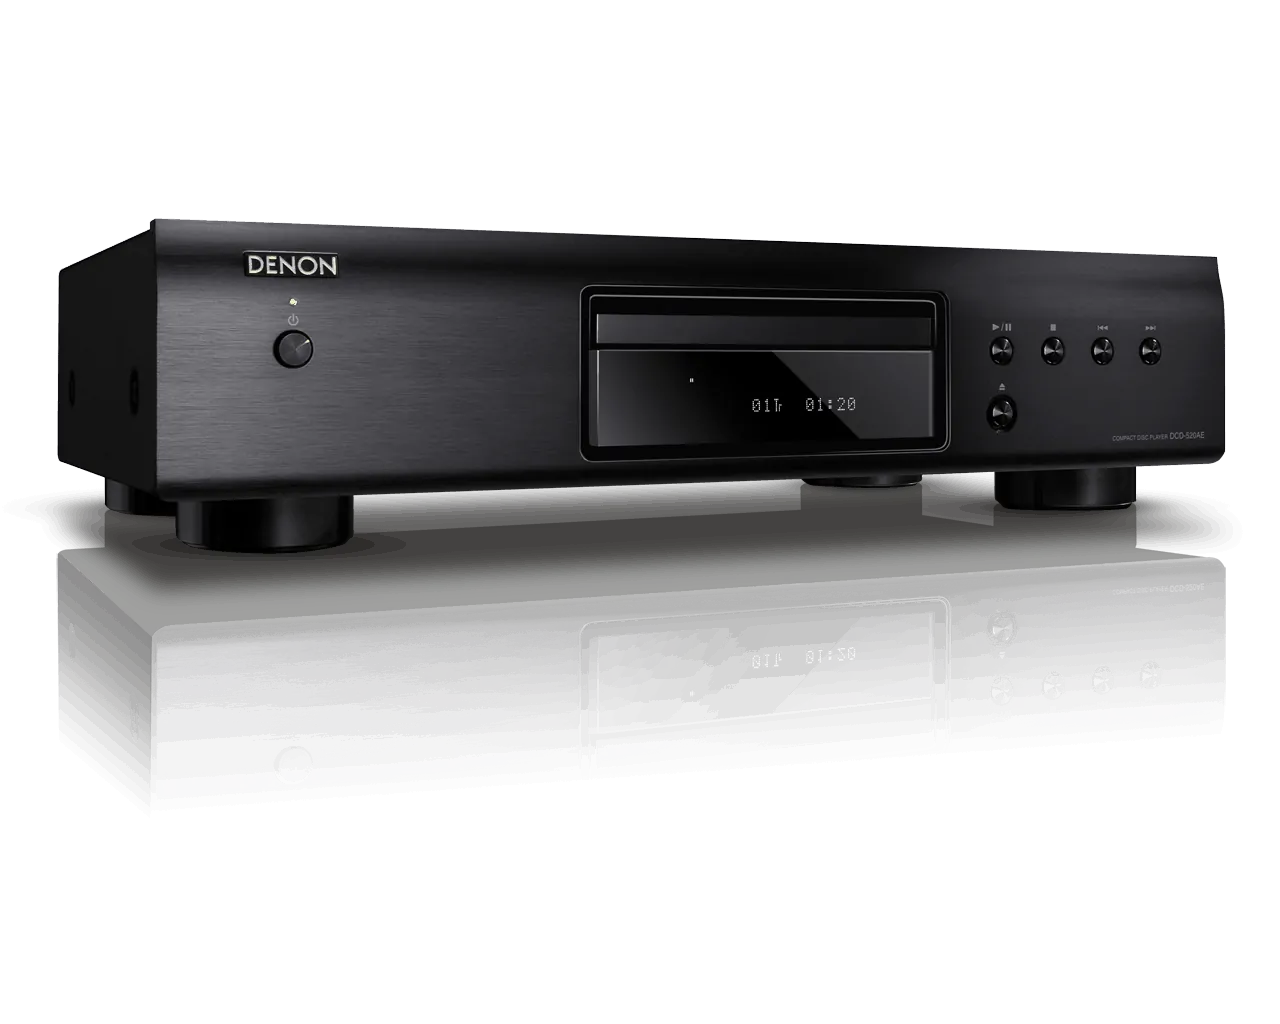 Kinosessel Bodenplatte Denon Dcd 520ae Cd Player Heimkinopartner